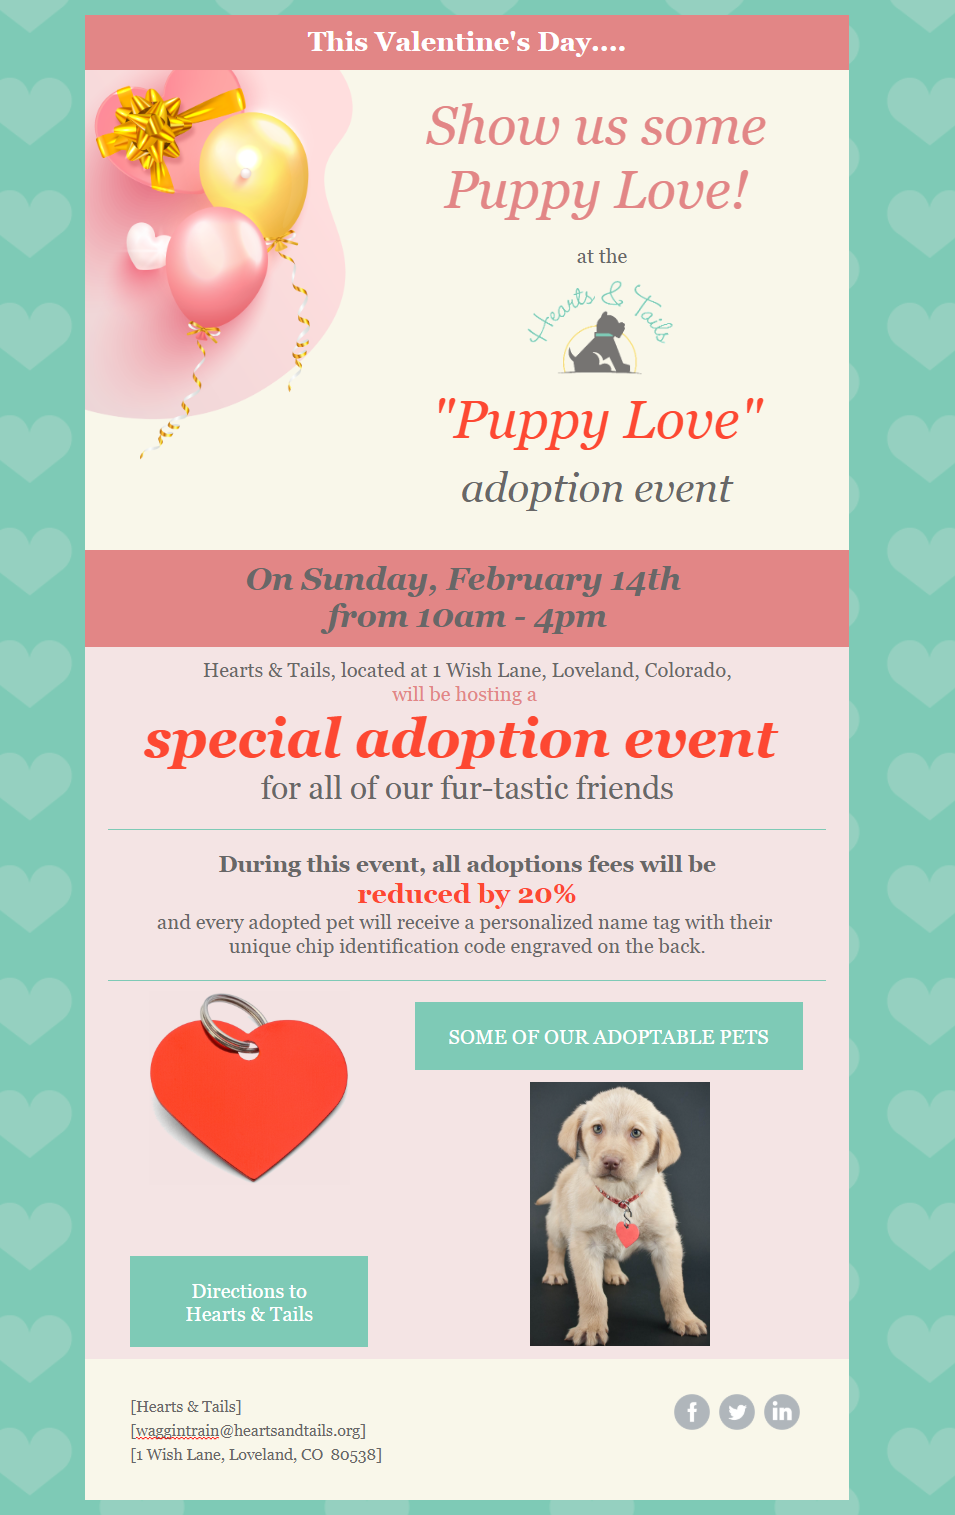 Constant Contact Valentine's Day Sale template turned into a nonprofit fundraising event invitation